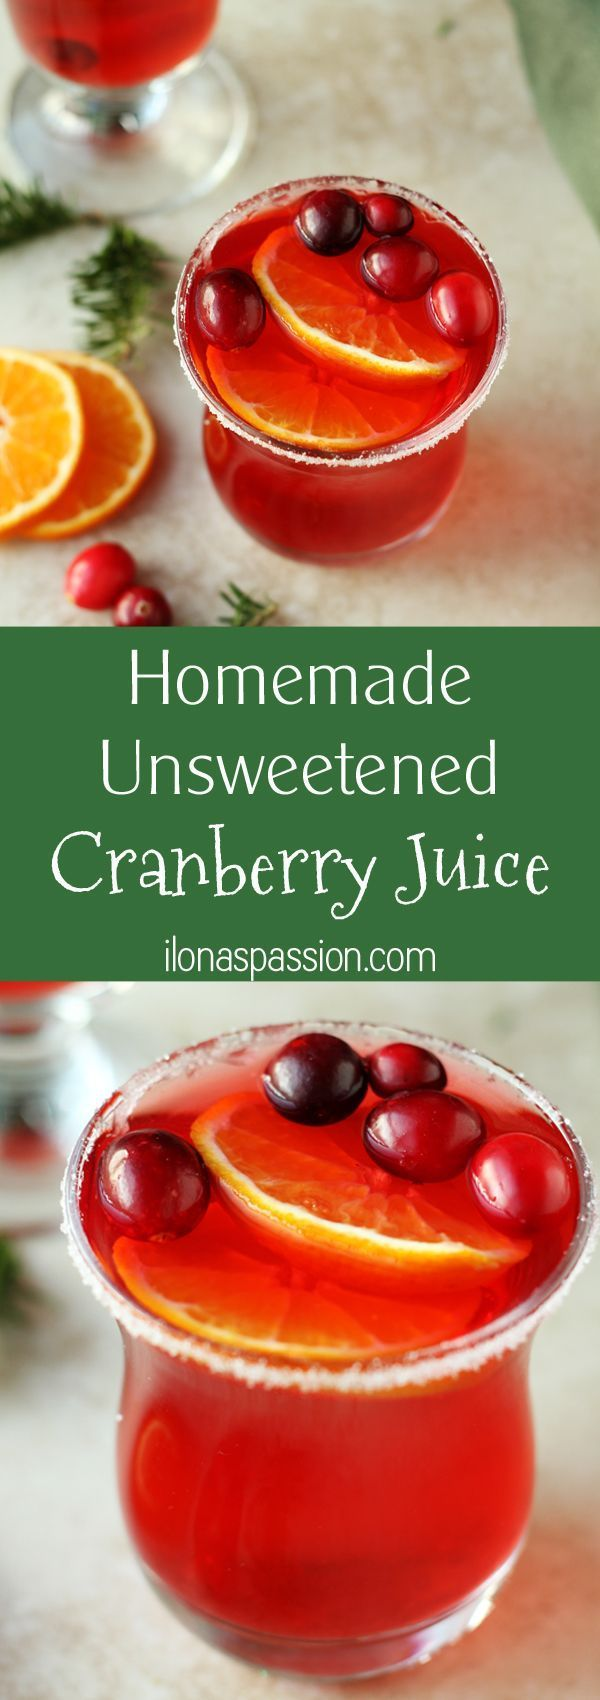 Homemade Unsweetened Cranberry Juice 100 Pure Homemade Unsweetened Cranberry Juice Recipe Unsweetened Cranberry Juice Homemade Juice Homemade Juice Cleanse